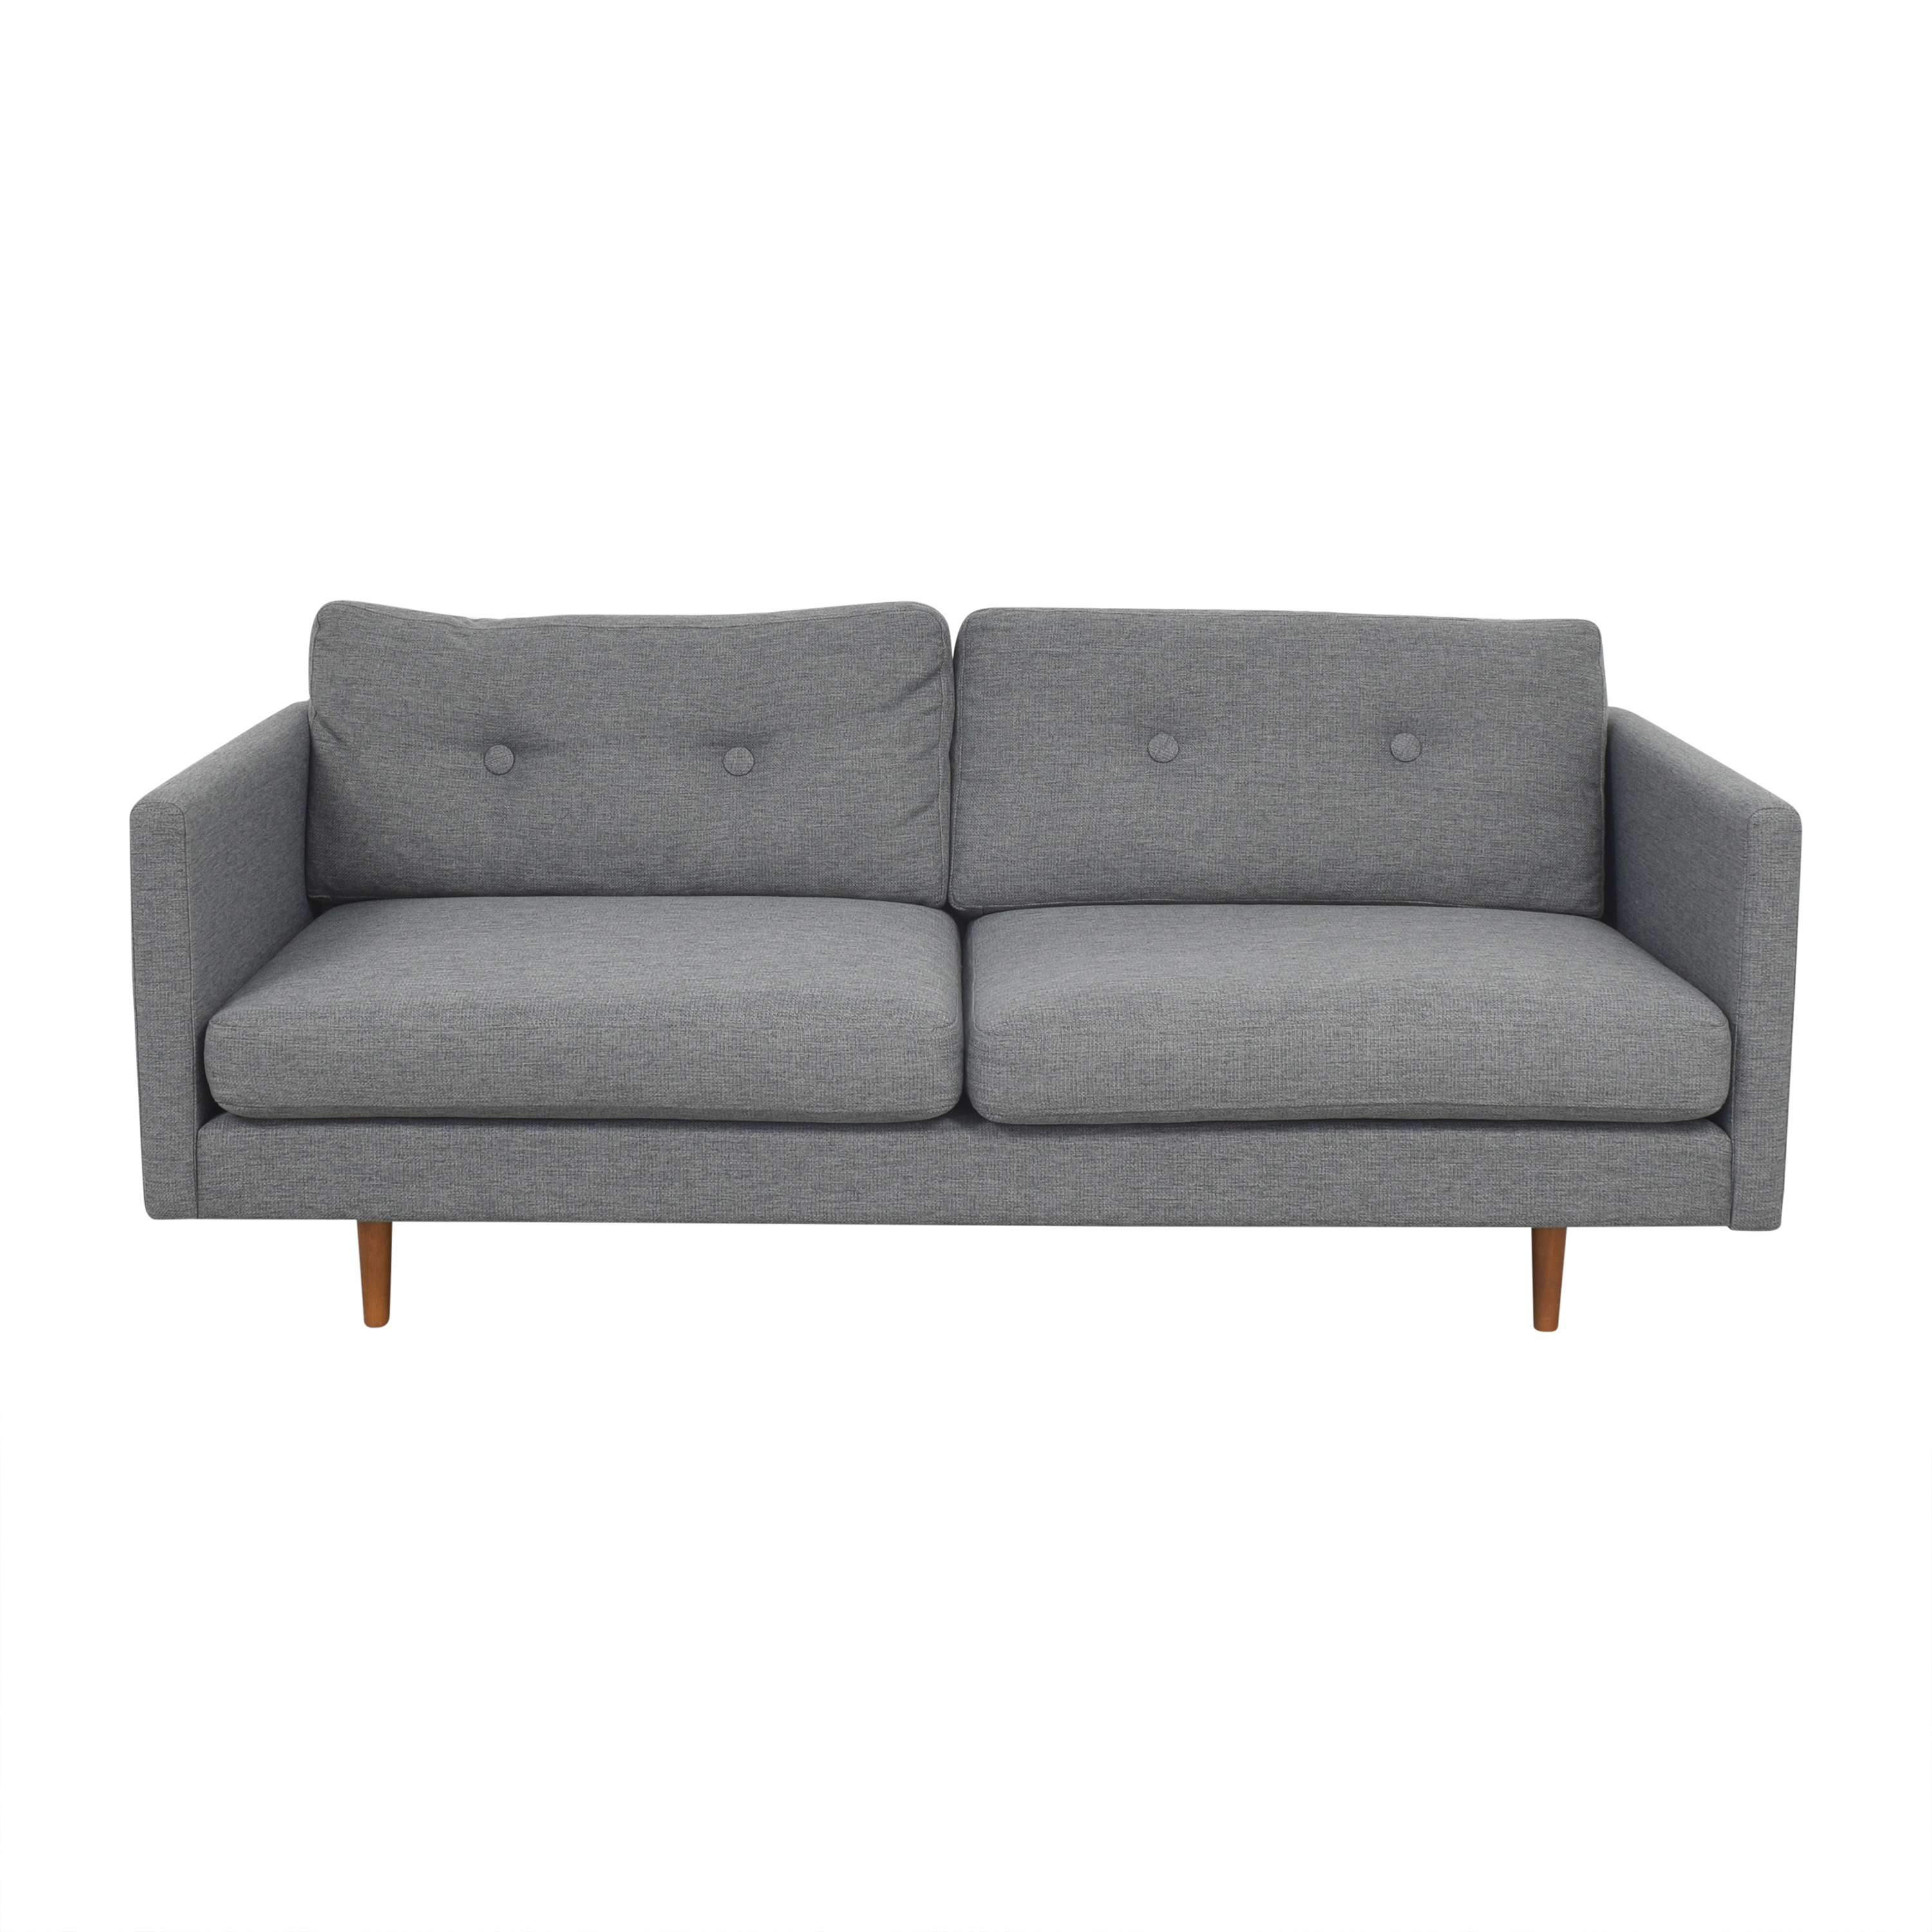 Article Article Anton 2.5-Seater Sofa Sofas